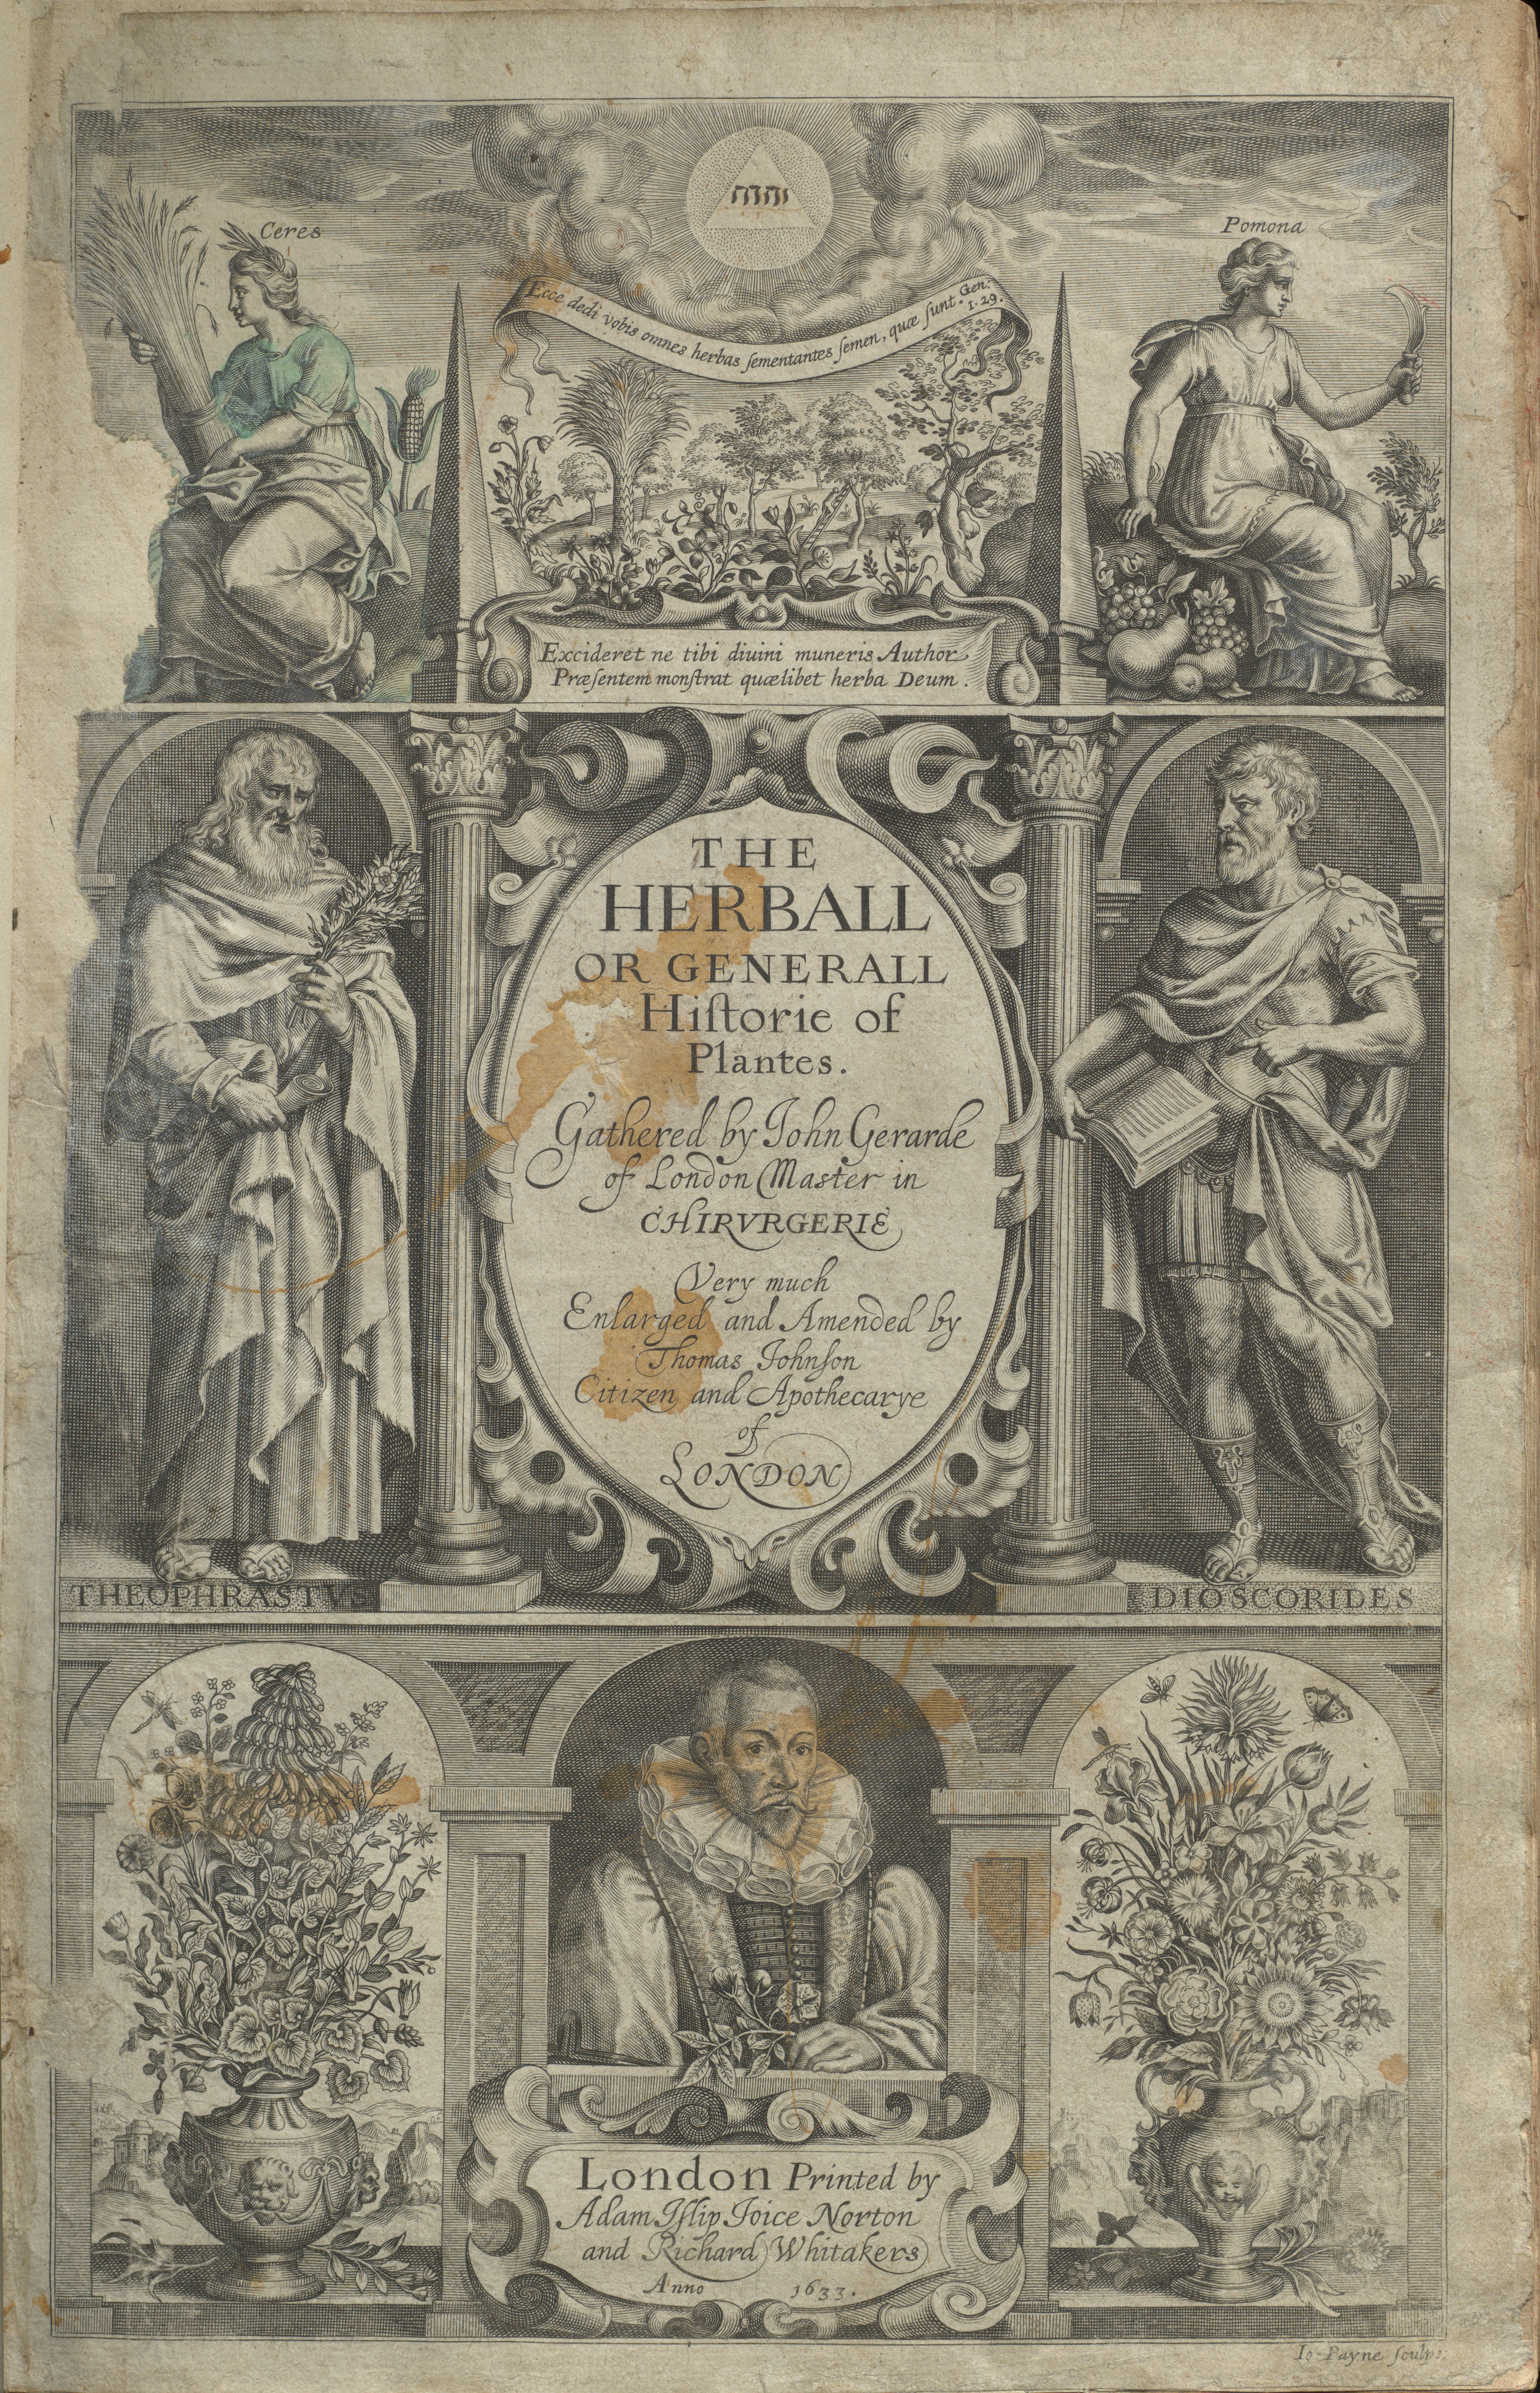 John Gerard's The Herball 1633, London, England title page.